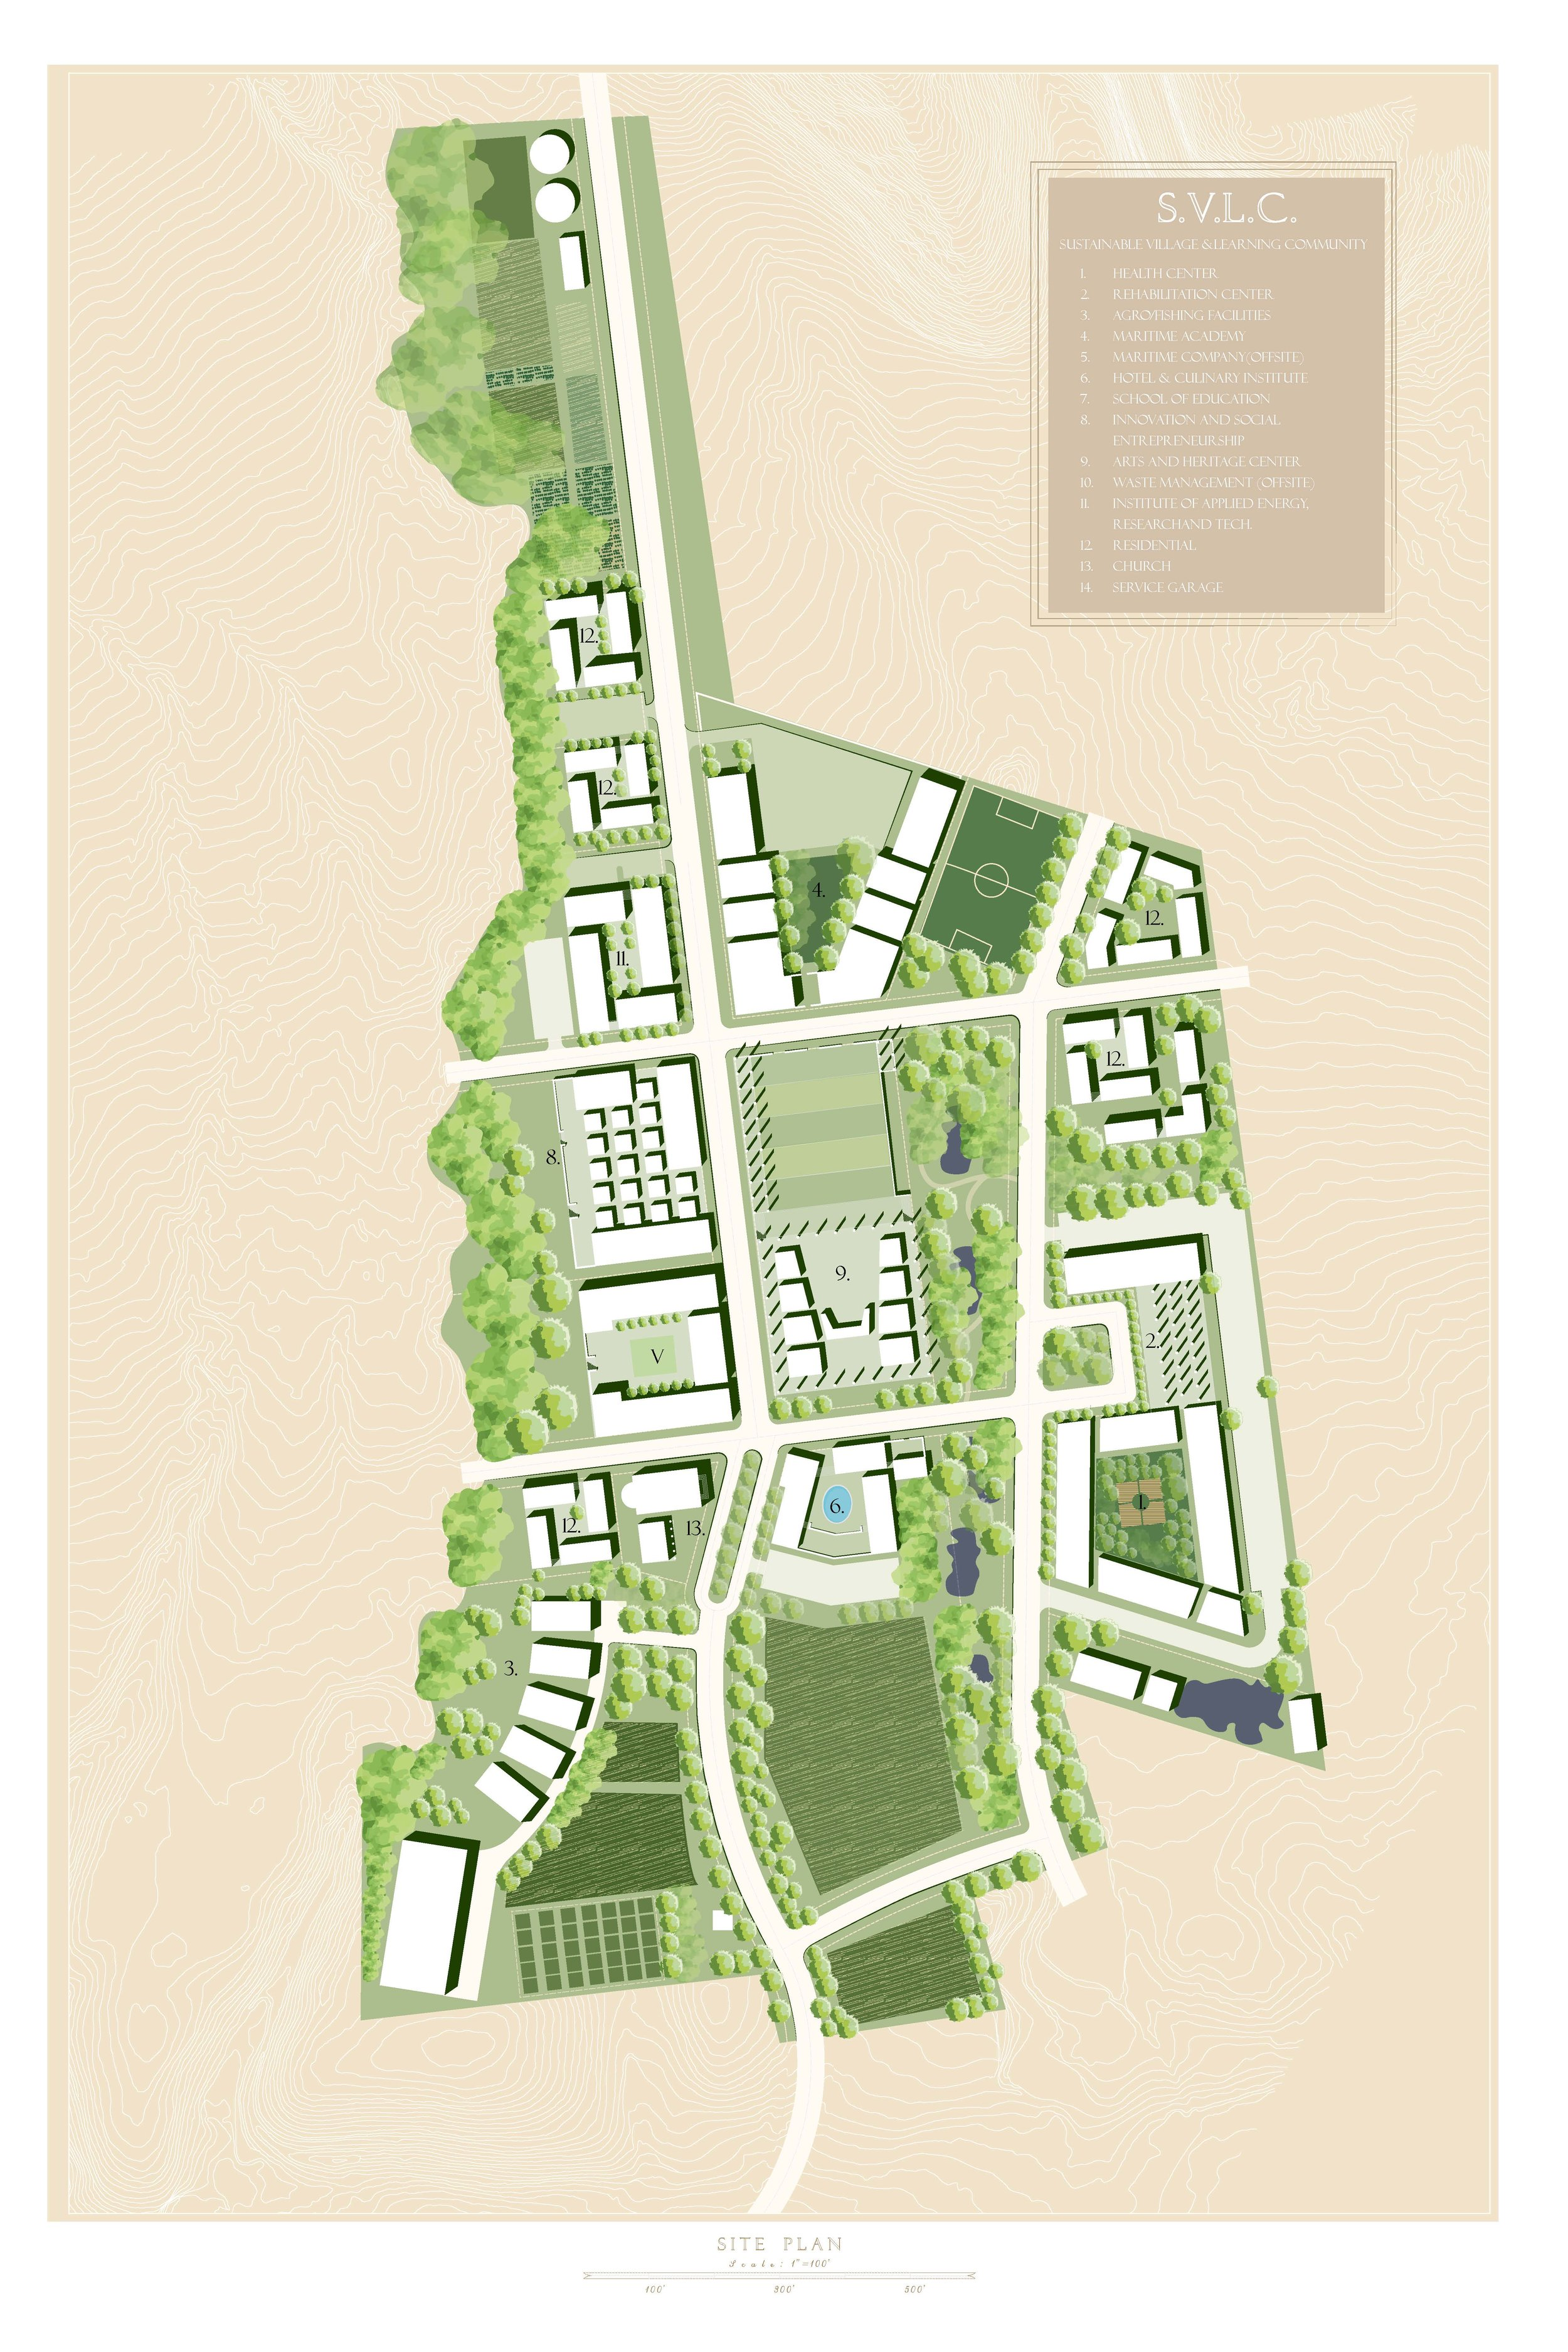 Masterplan of the Sustainable Village and Learning Community